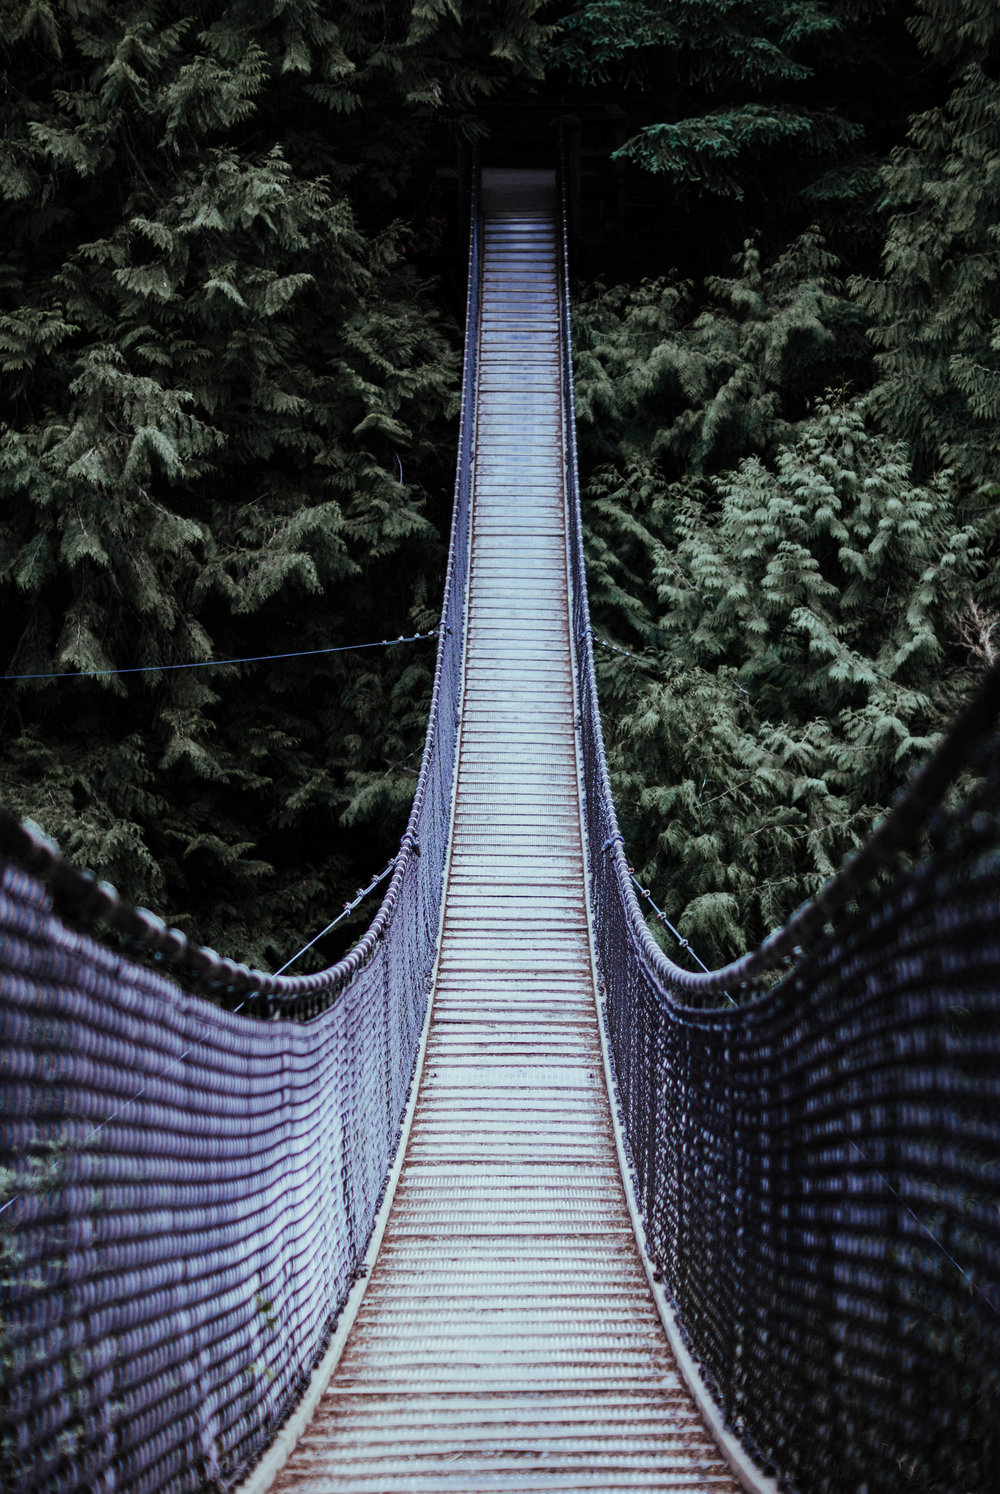 Location: Lynn Canyon Suspension Bridge, Vancouver, BC